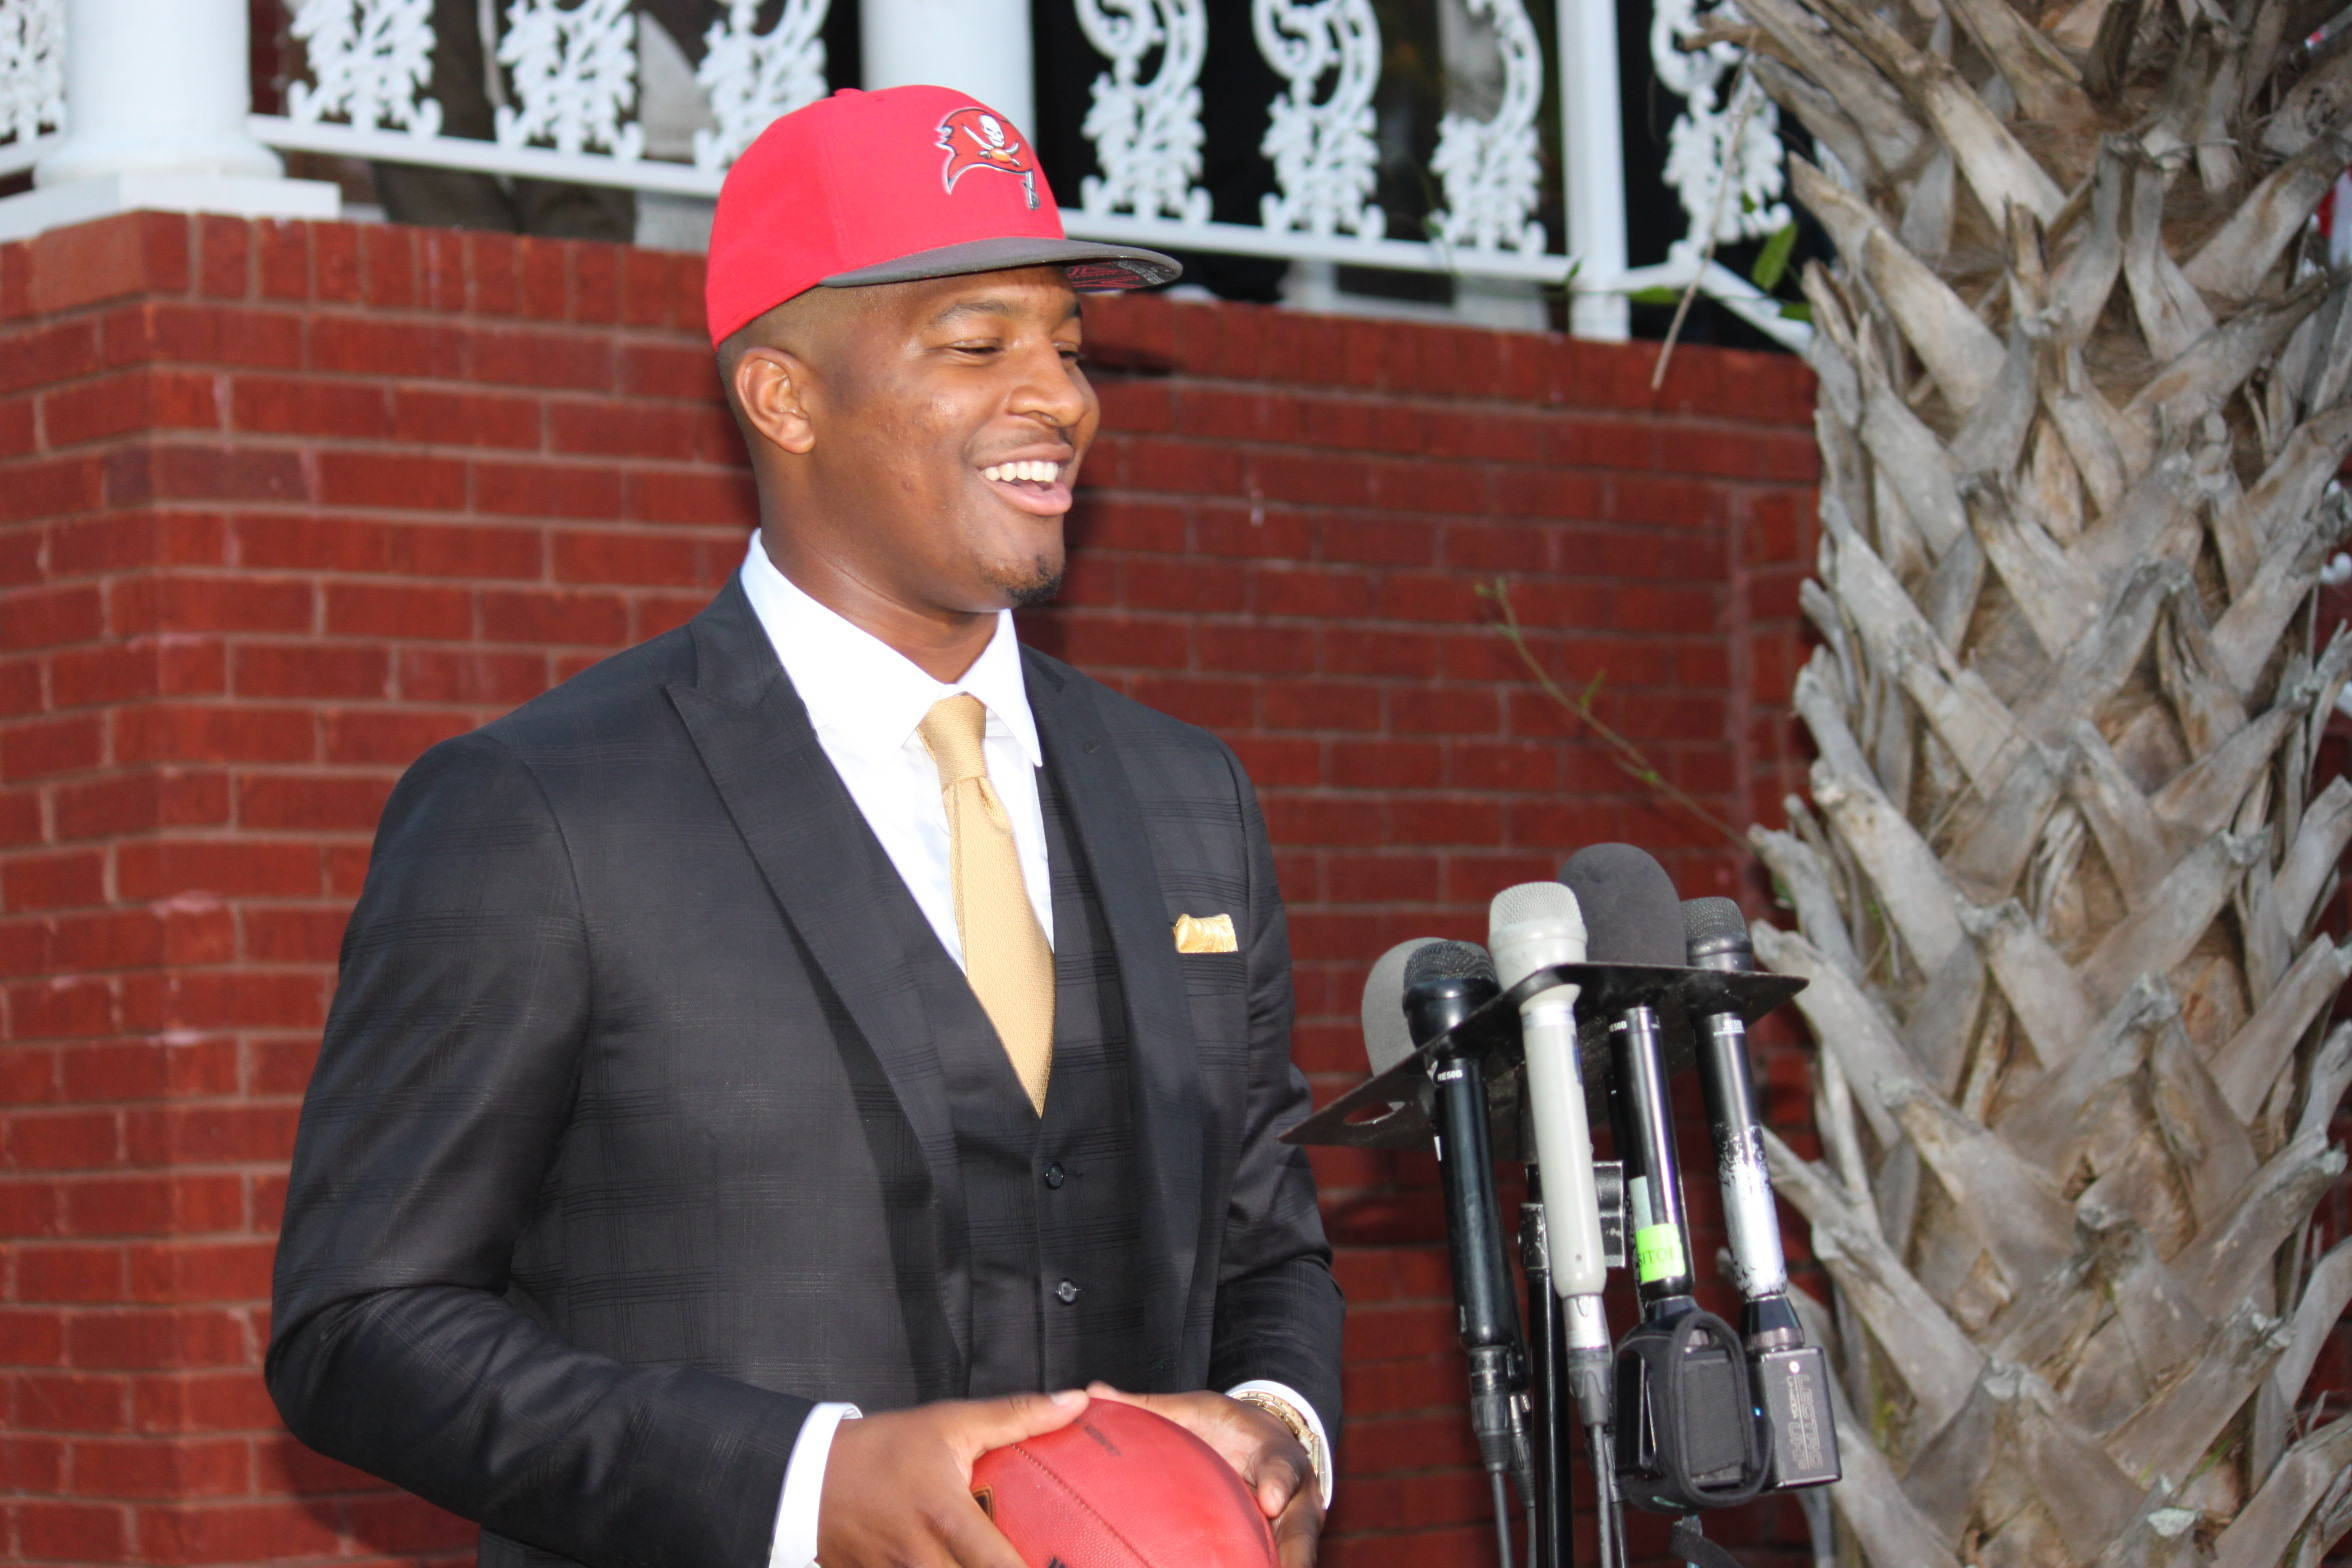 Jameis Winston Gets the Call from the Tampa Bay Buccaneers